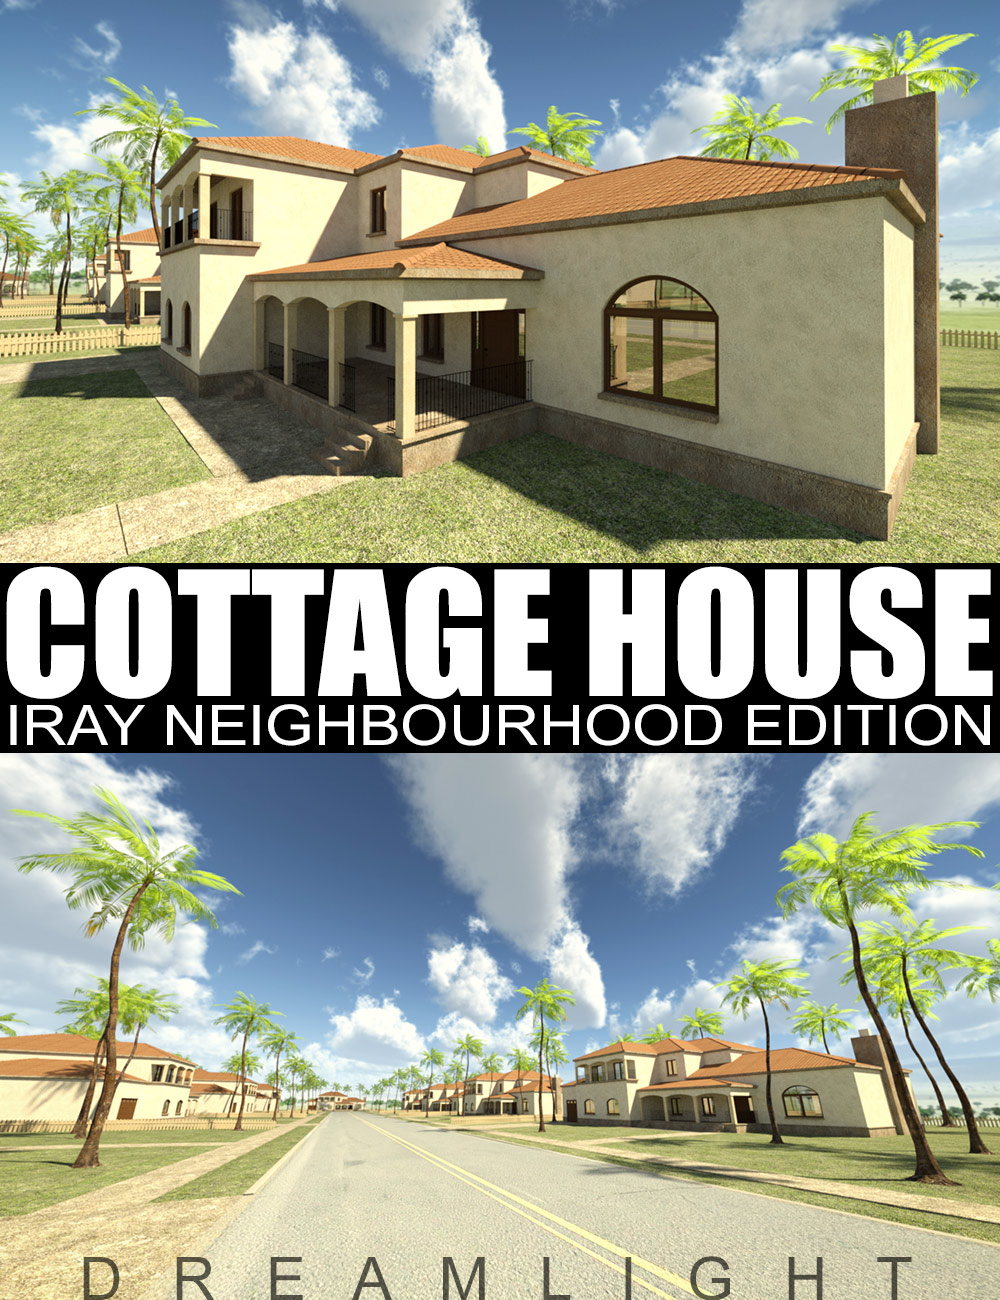 Cottage House - Iray Neighbourhood Edition by: Dreamlight, 3D Models by Daz 3D